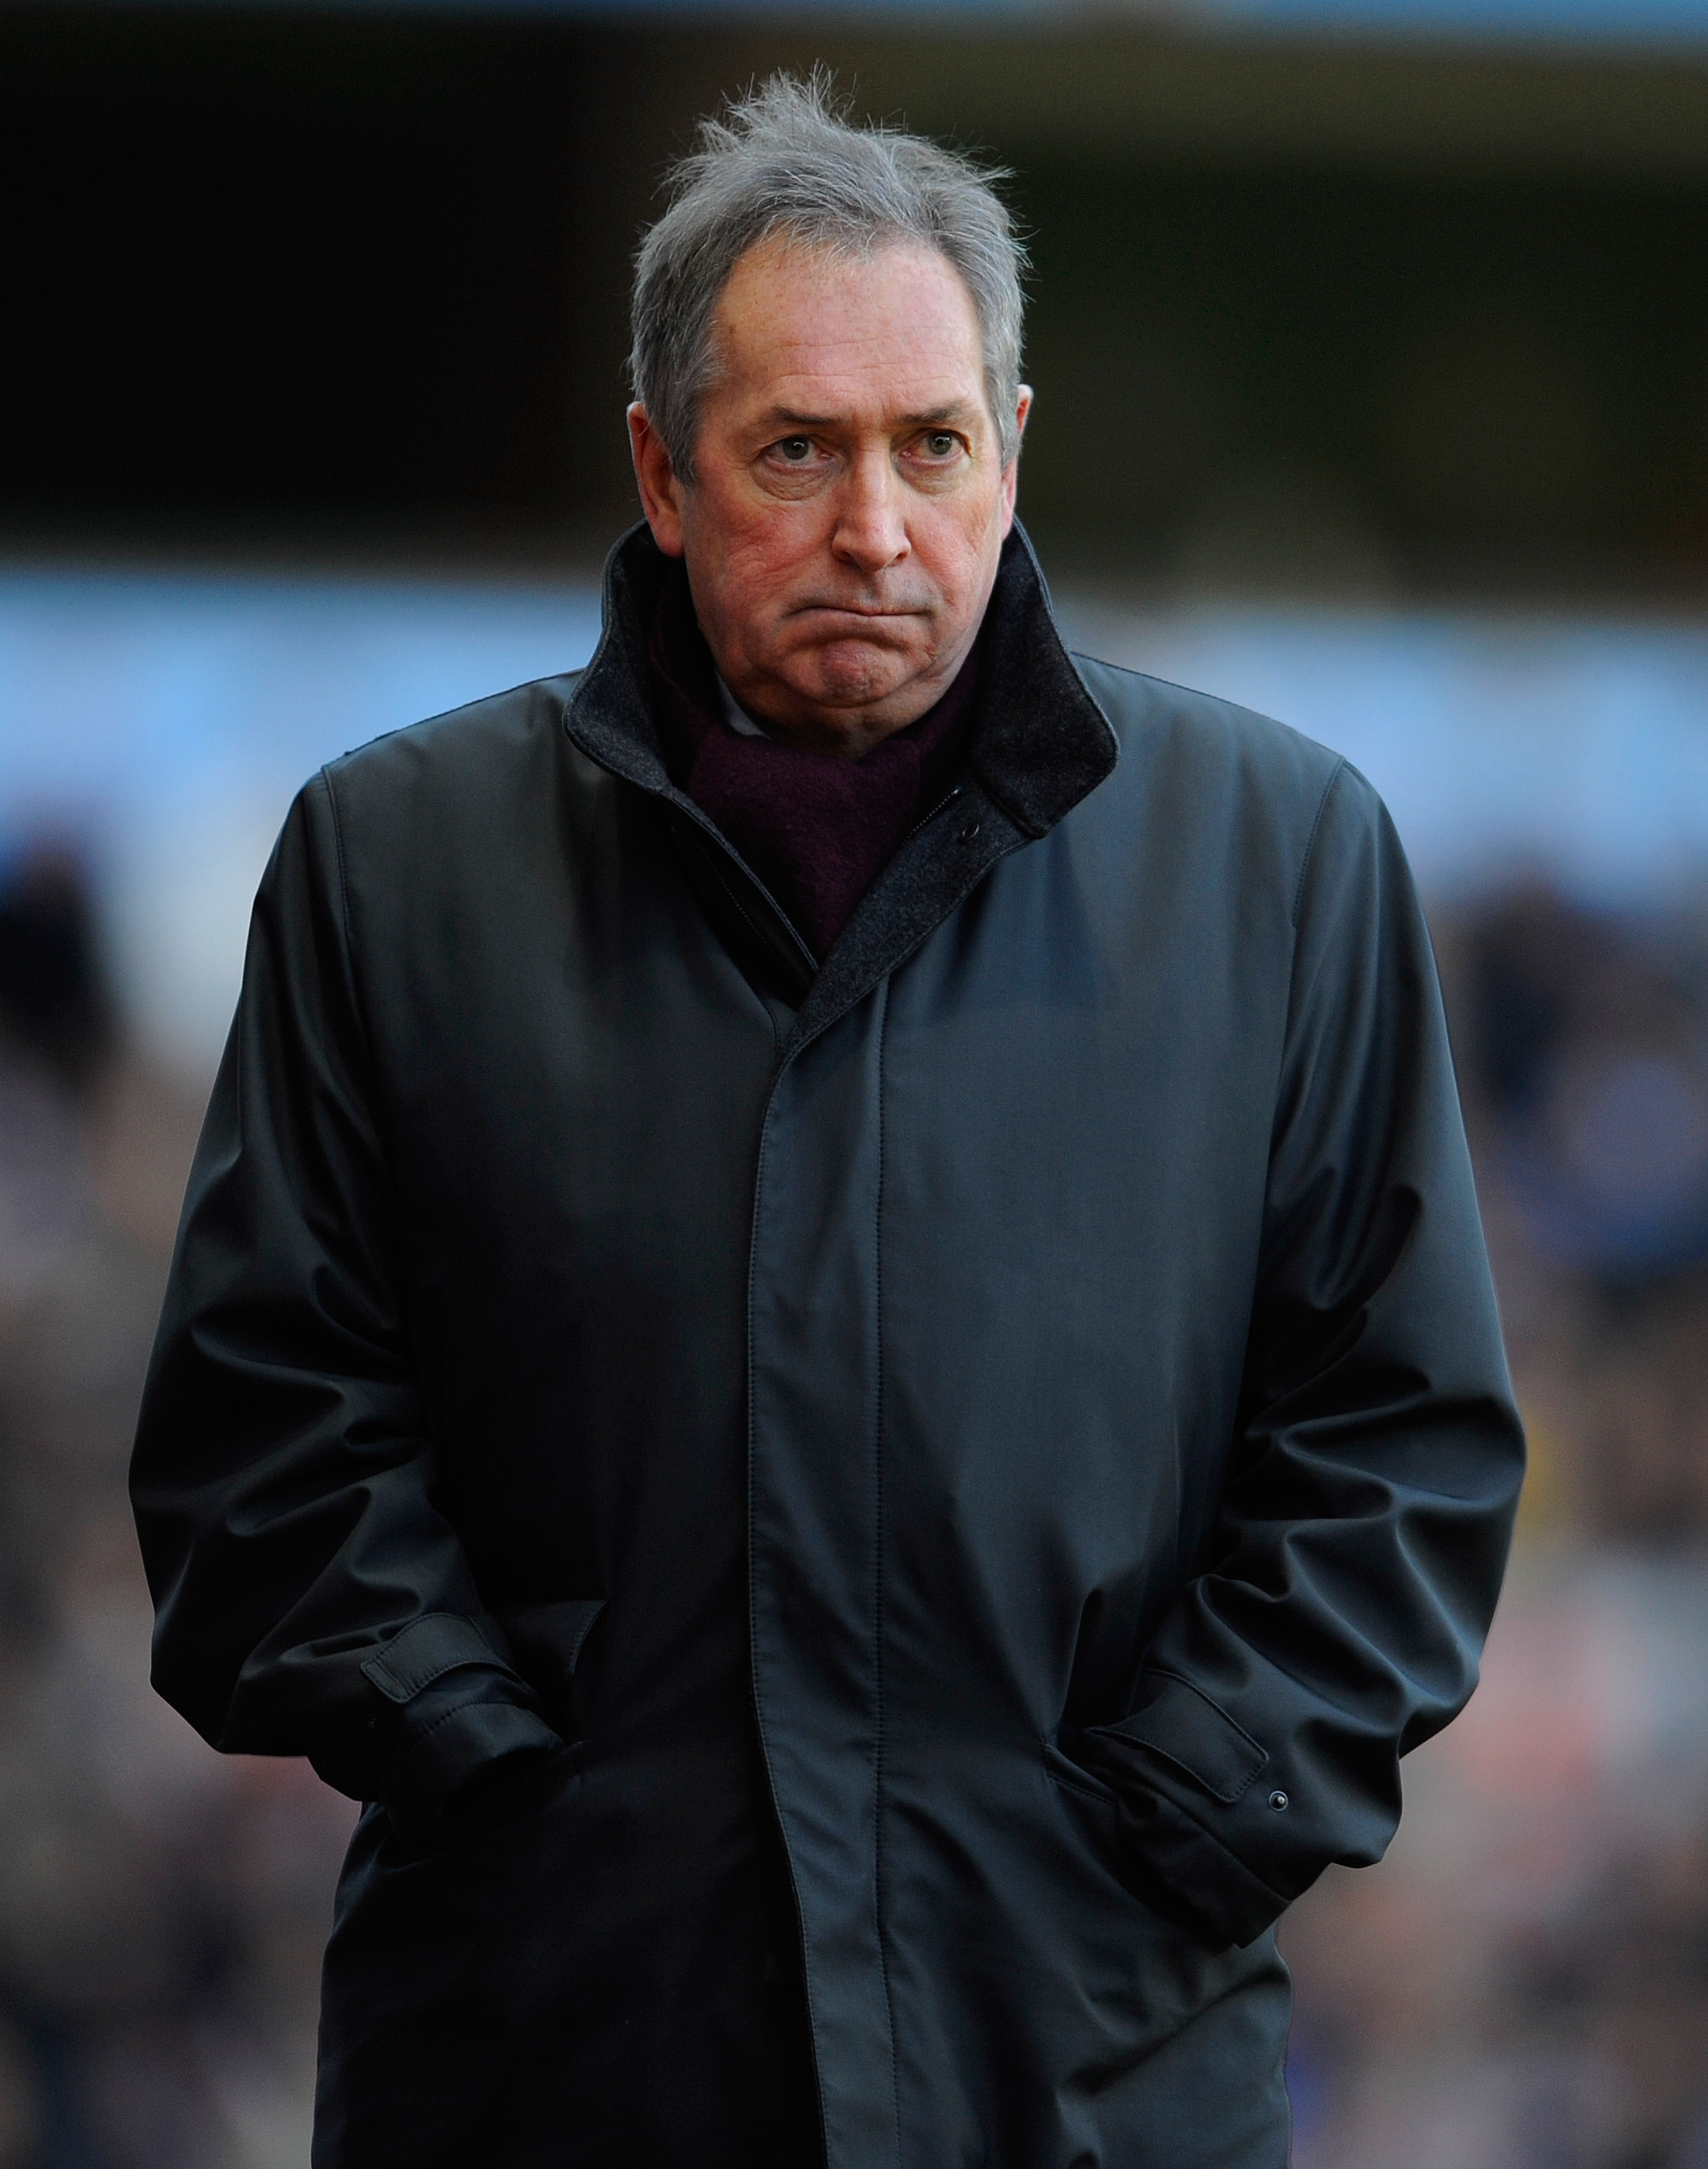 BIRMINGHAM, ENGLAND - NOVEMBER 27:  Villa manager Gerard Houllier looks on during the Barclays Premier League match between Aston Villa and Arsenal at Villa Park on November 27, 2010 in Birmingham, England.  (Photo by Michael Regan/Getty Images)